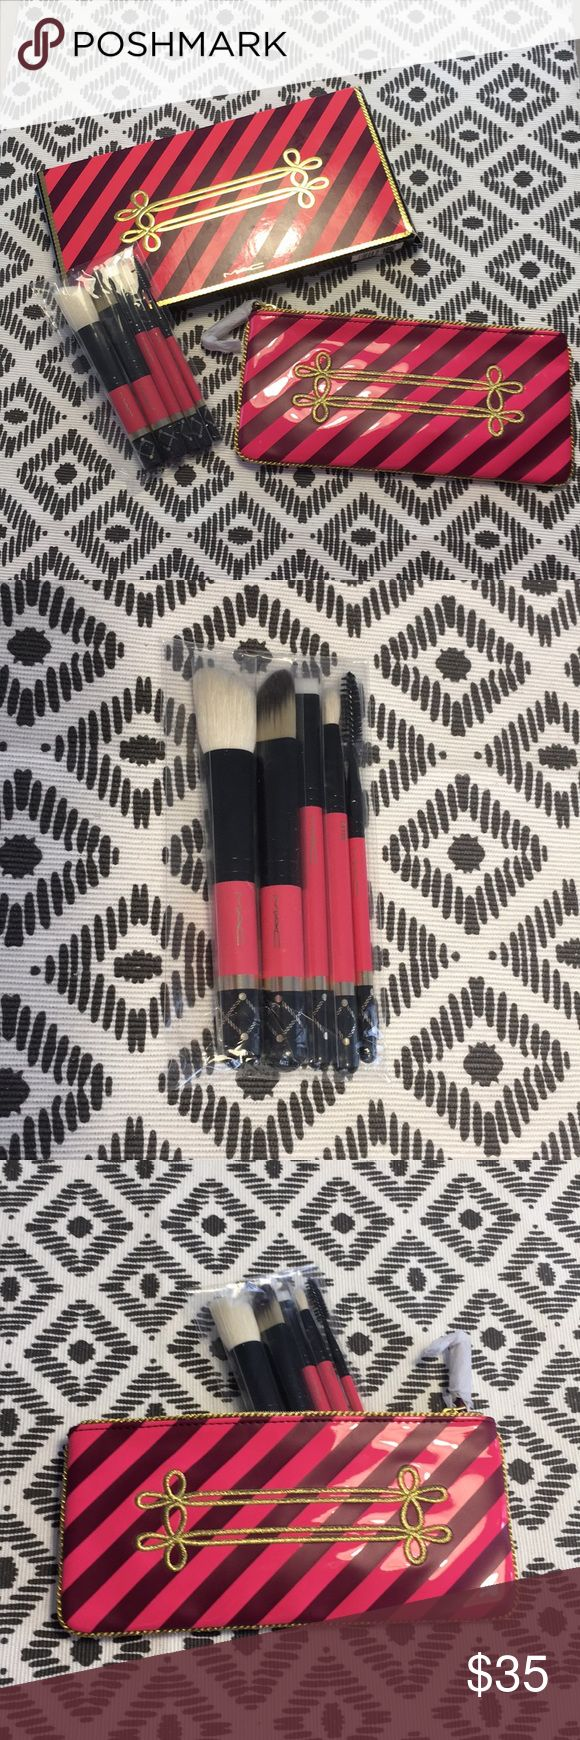 MAC Makeup brush set - New in box! These fundamental brushes are all you need to create your everyday look. Basics for anyone's makeup bag. MAC Cosmetics Makeup Brushes & Tools